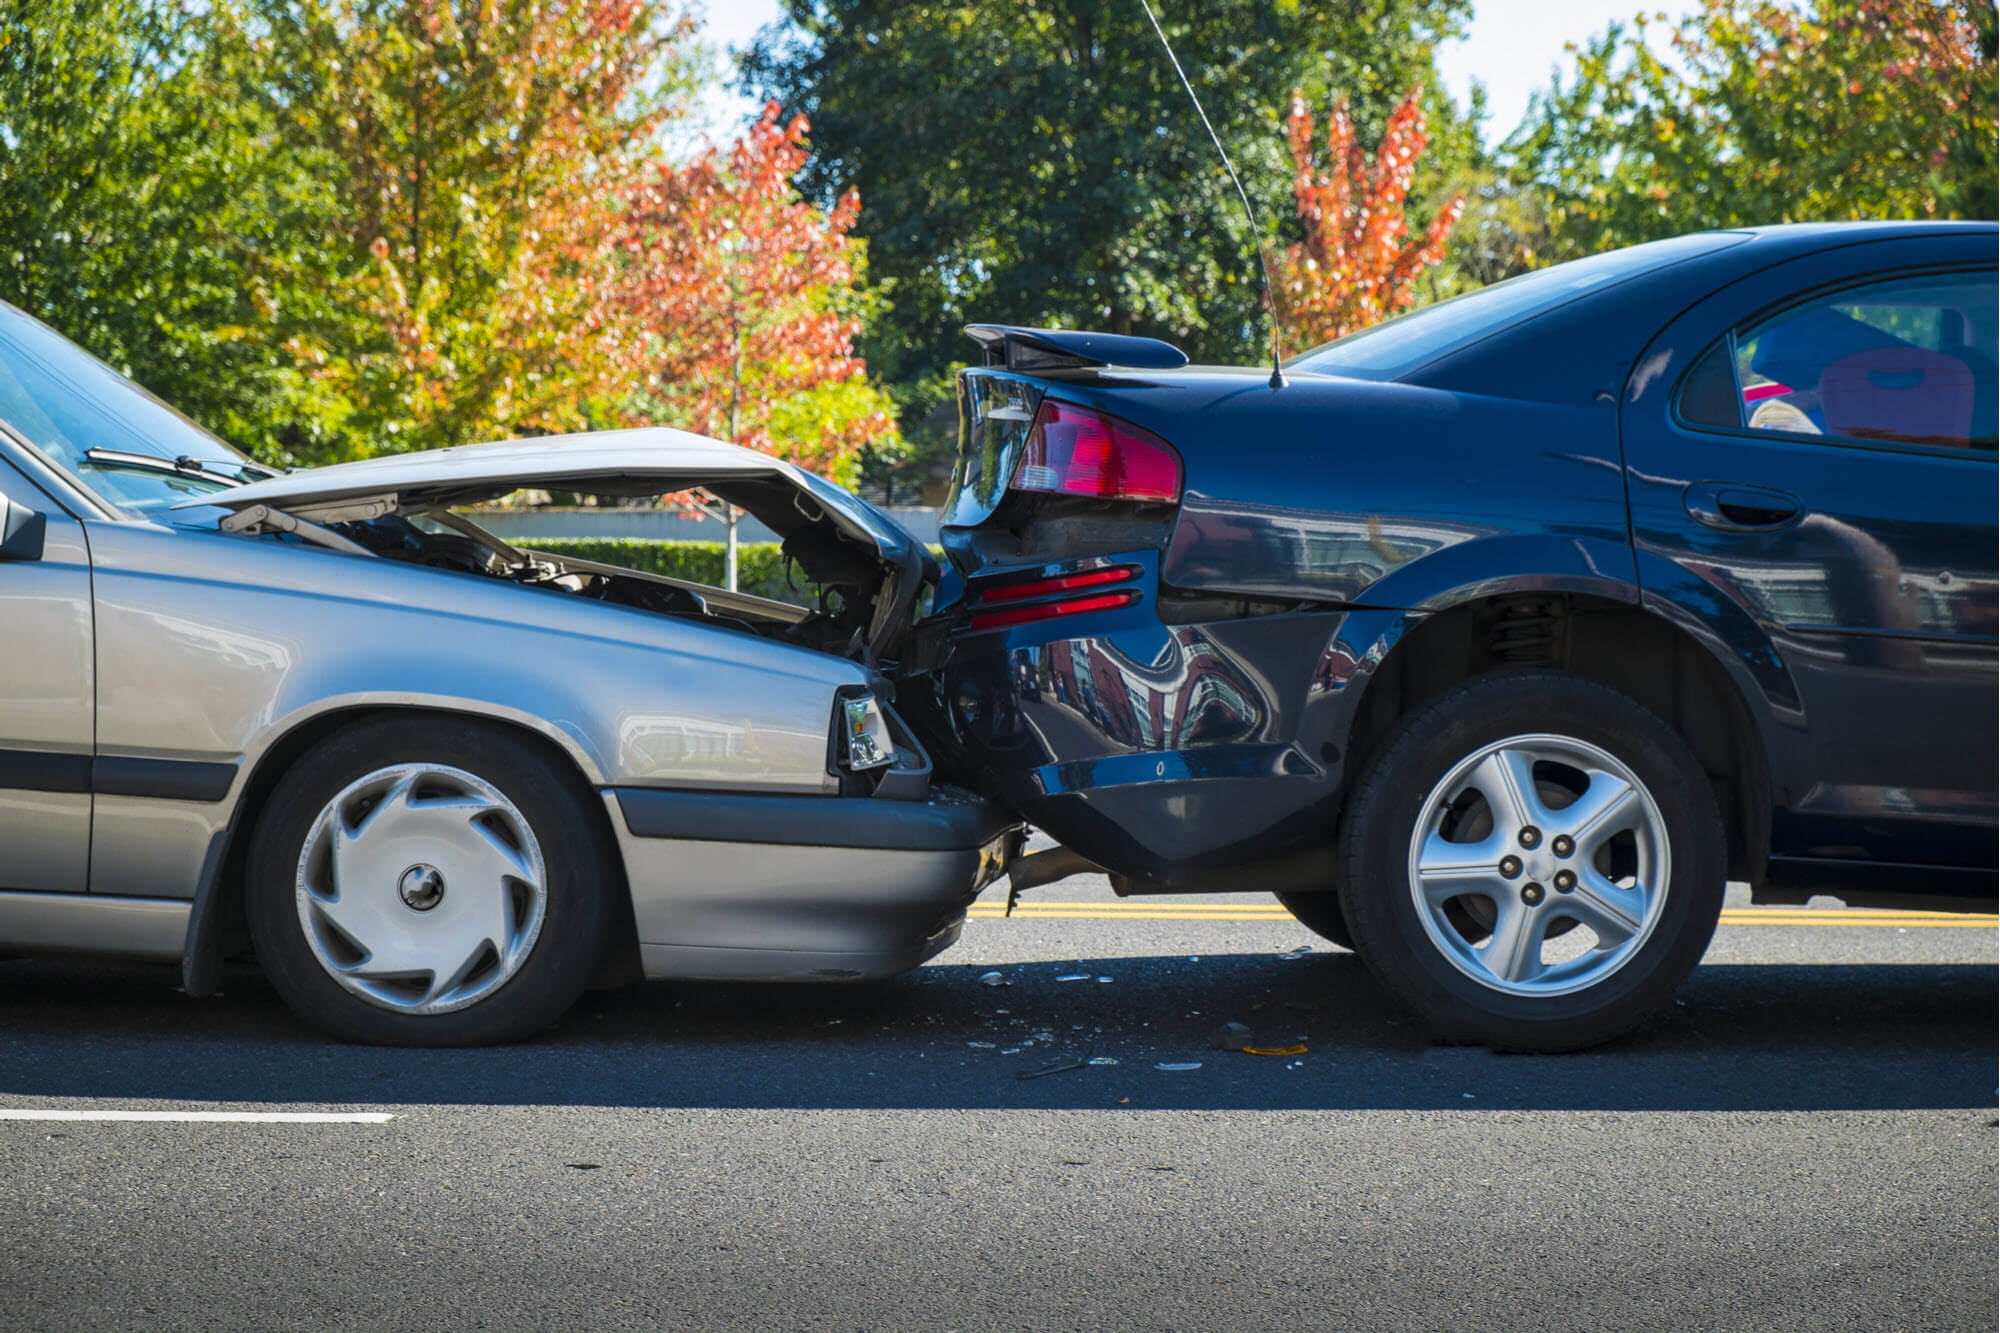 Establishing Liability in Auto Accidents